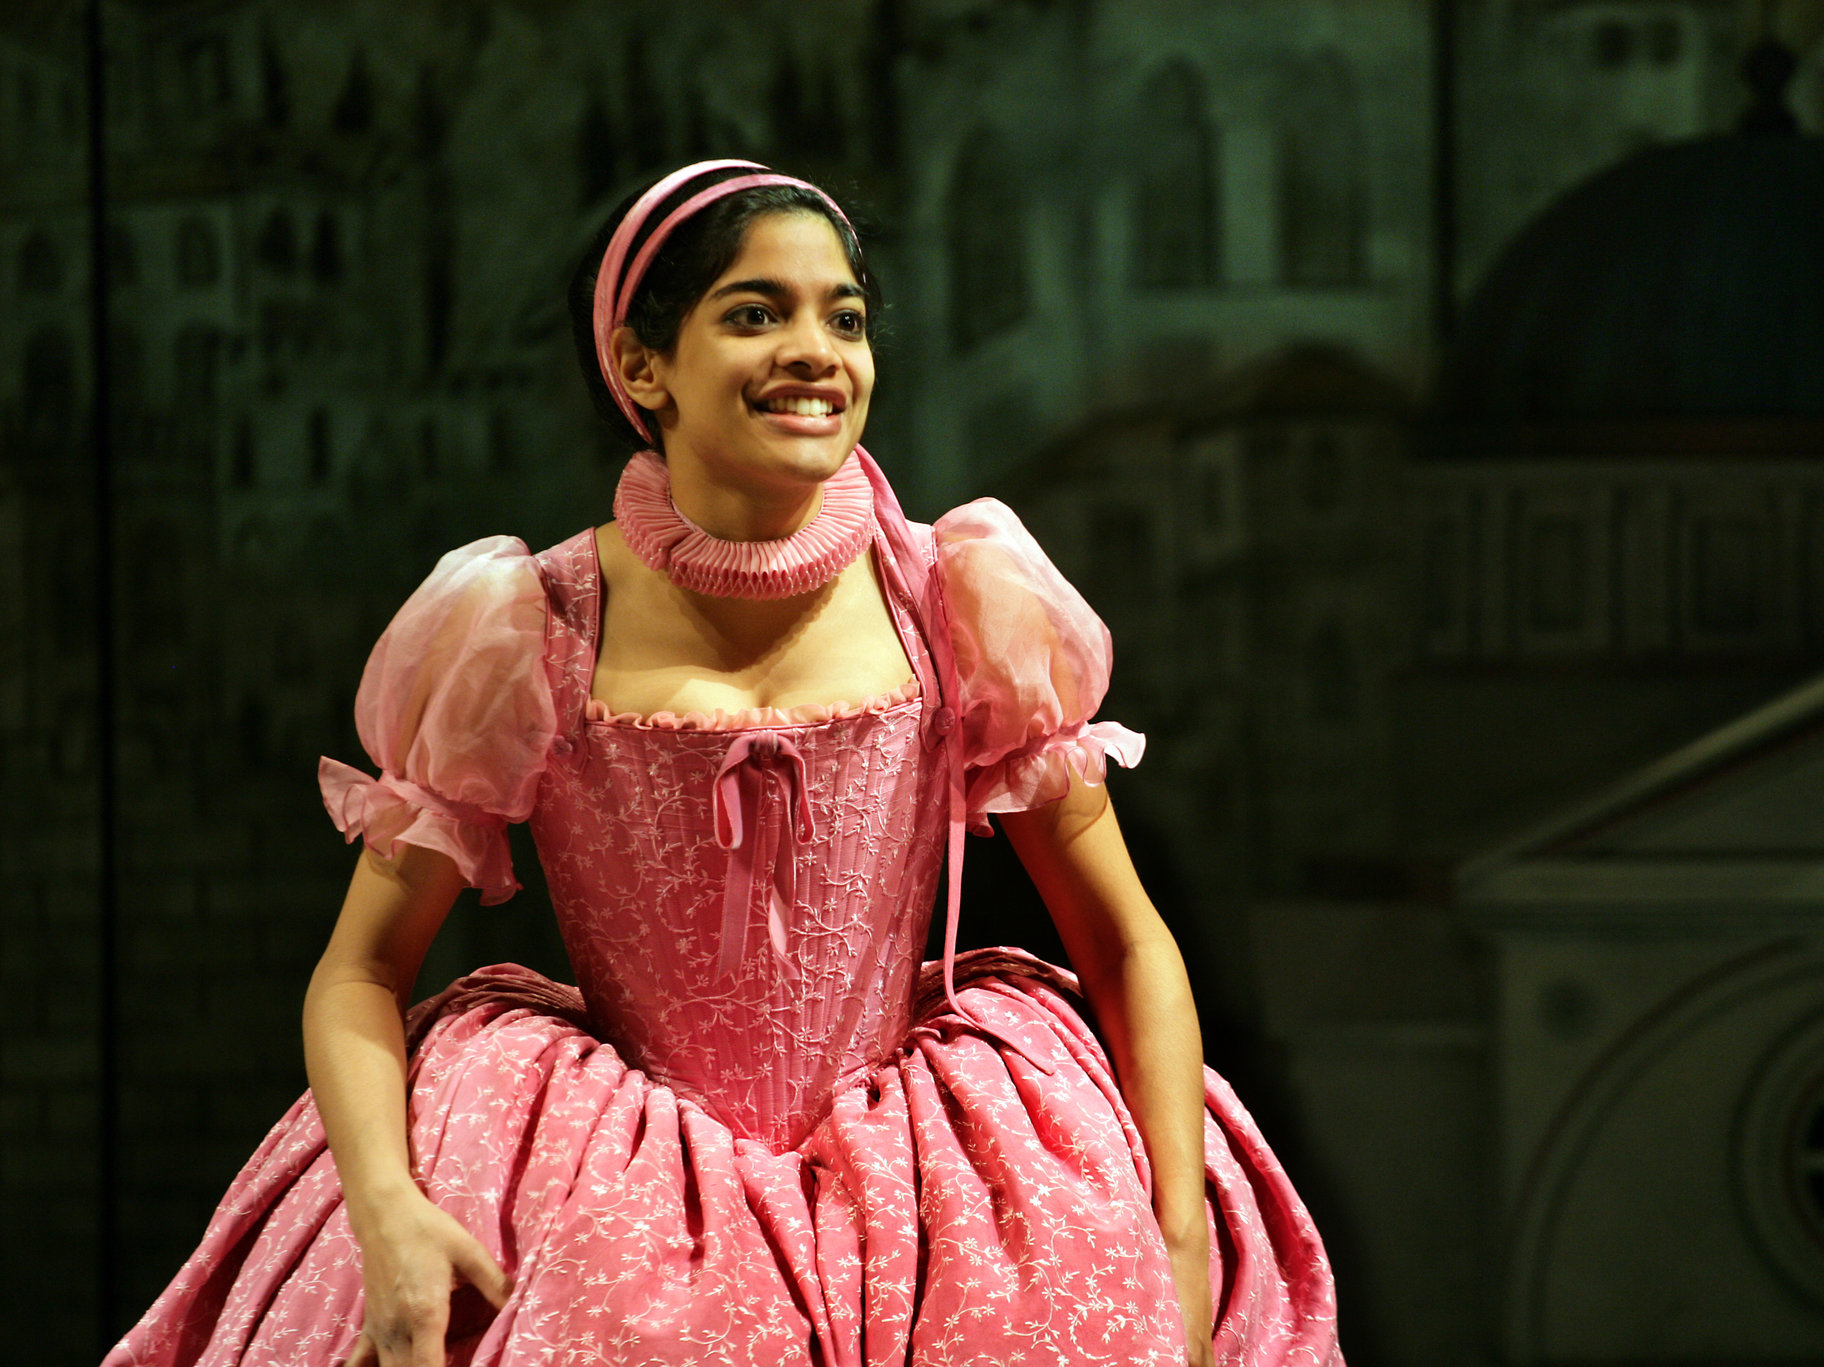 Bianca in the 2008 production of The Taming of The Shrew